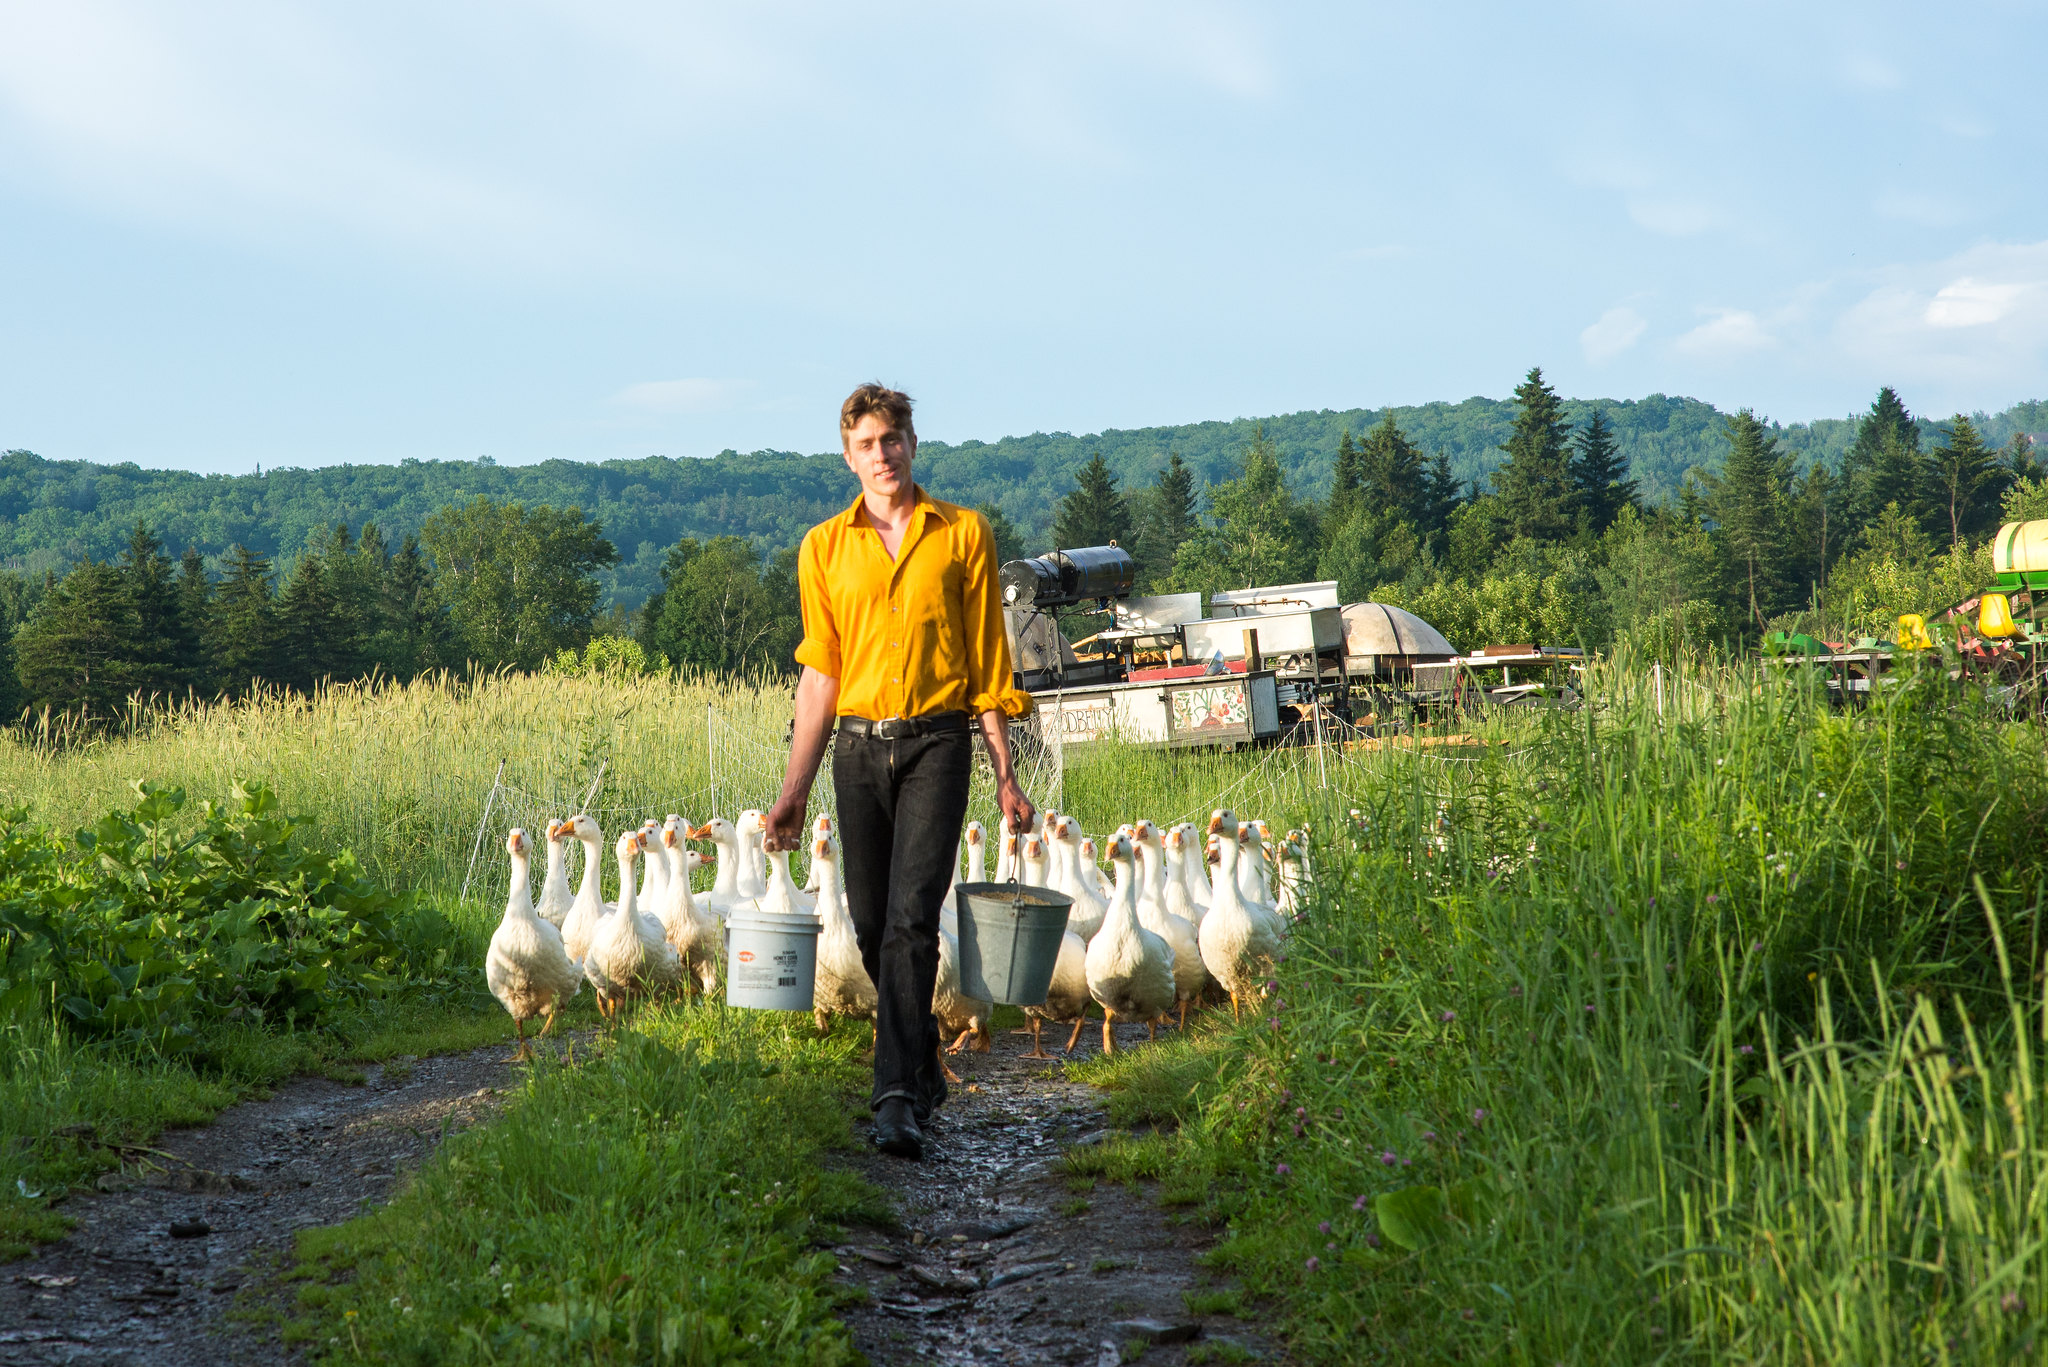 A man holding a bucket surrounded on either side by geese in a field